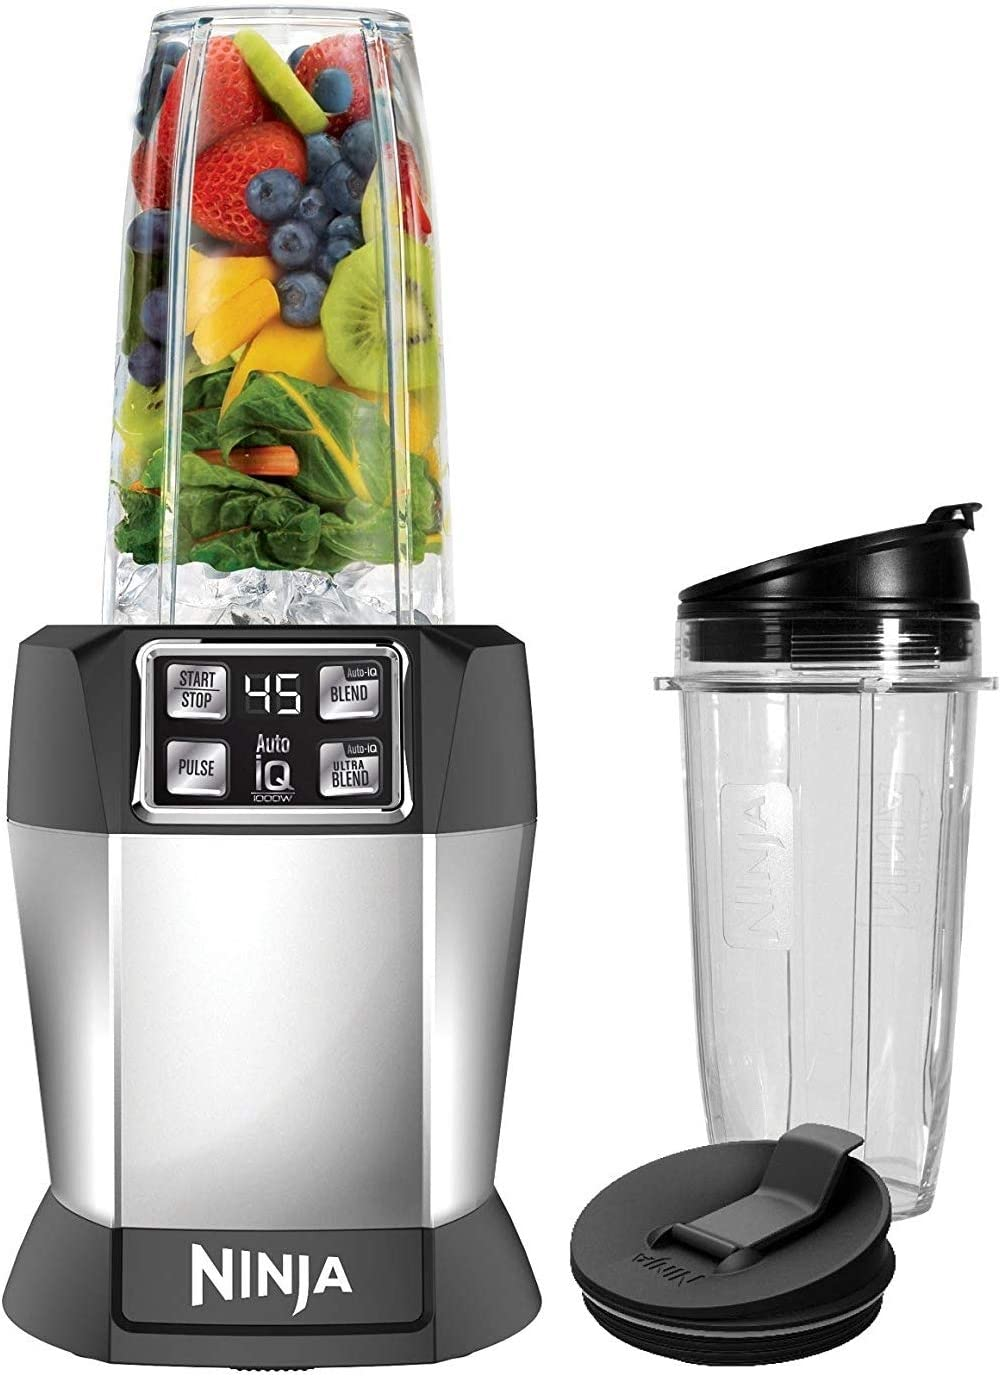 Nutri Ninja BL480D Auto-iQ Blender 1000 Watts, Black (Certified Refurbished)